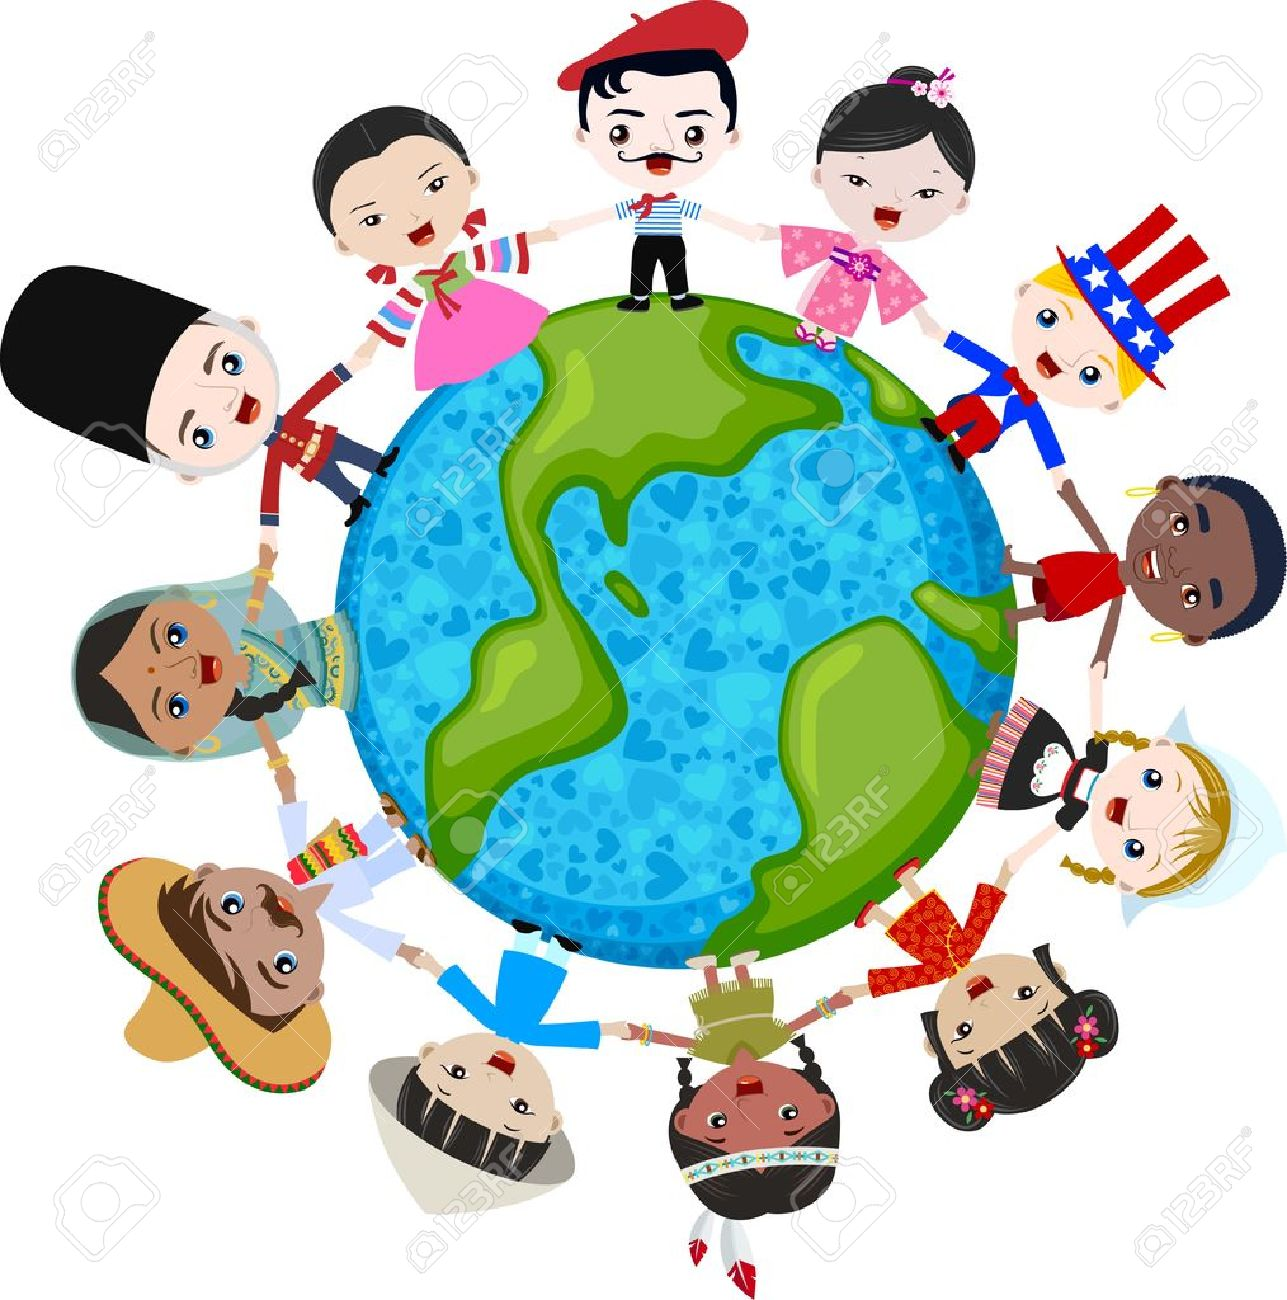 multicultural children on planet earth cultural diversity royalty